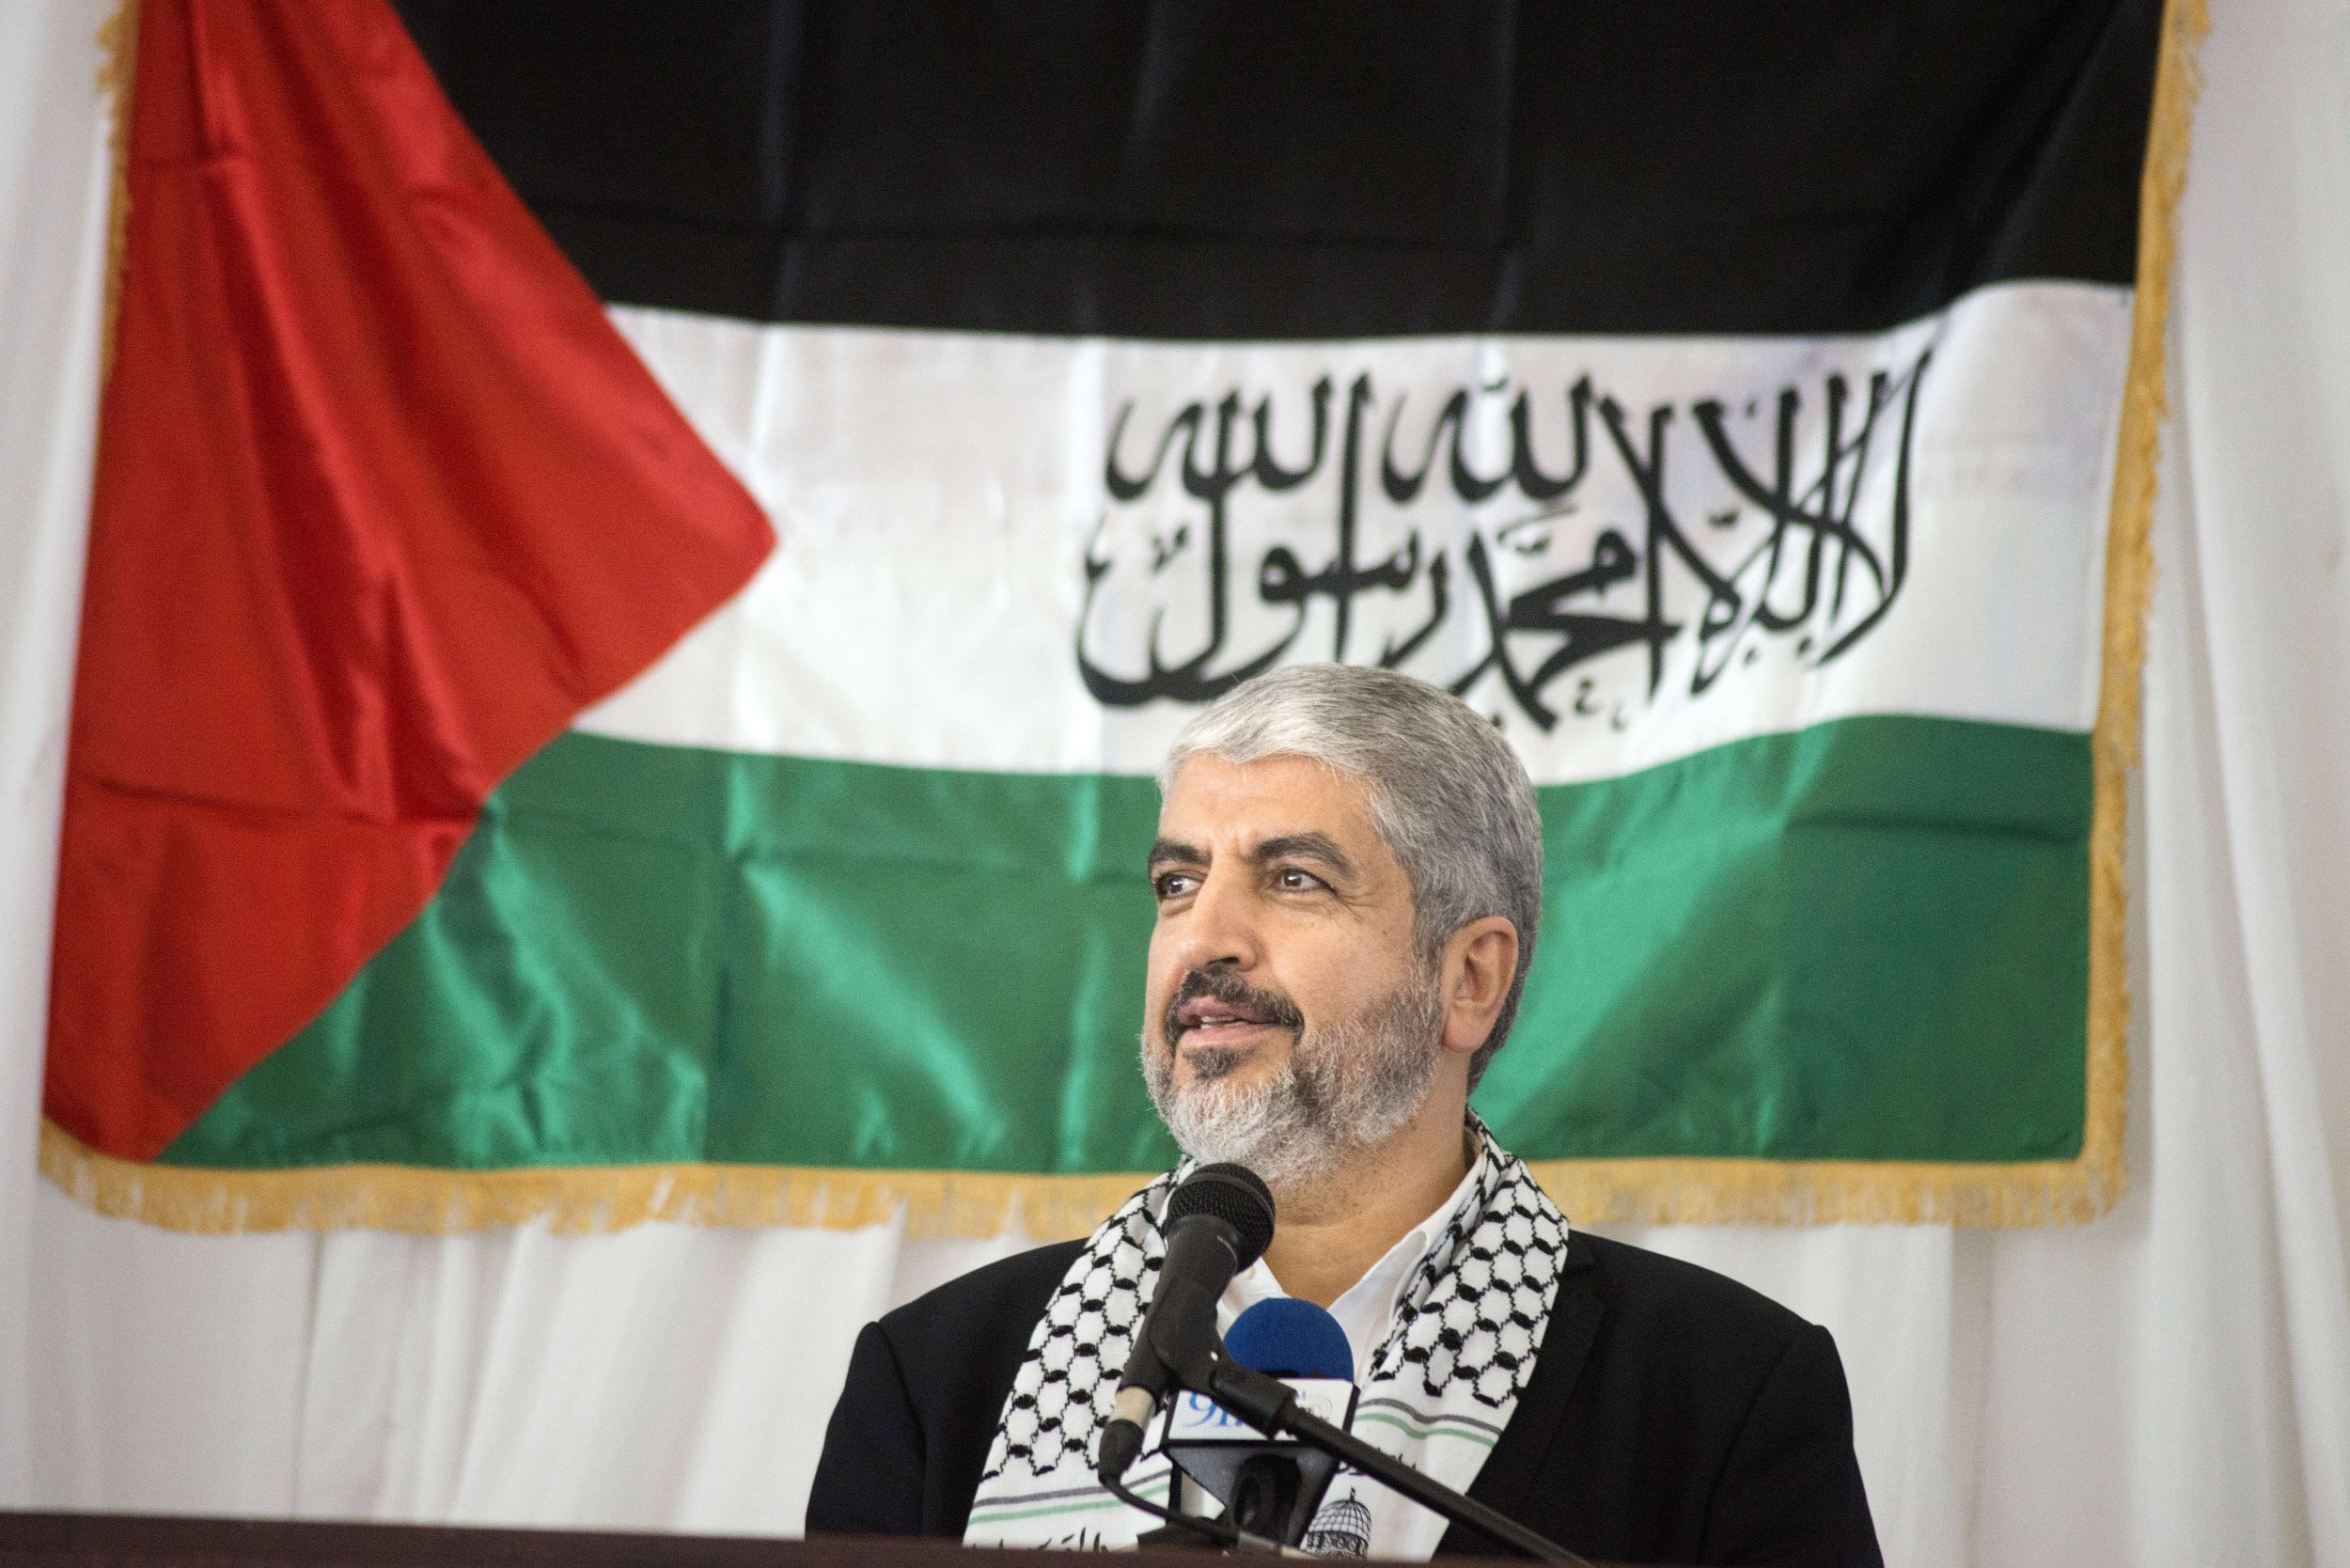 Hamas Leader Khaled Meshaal to Step Down: Reports